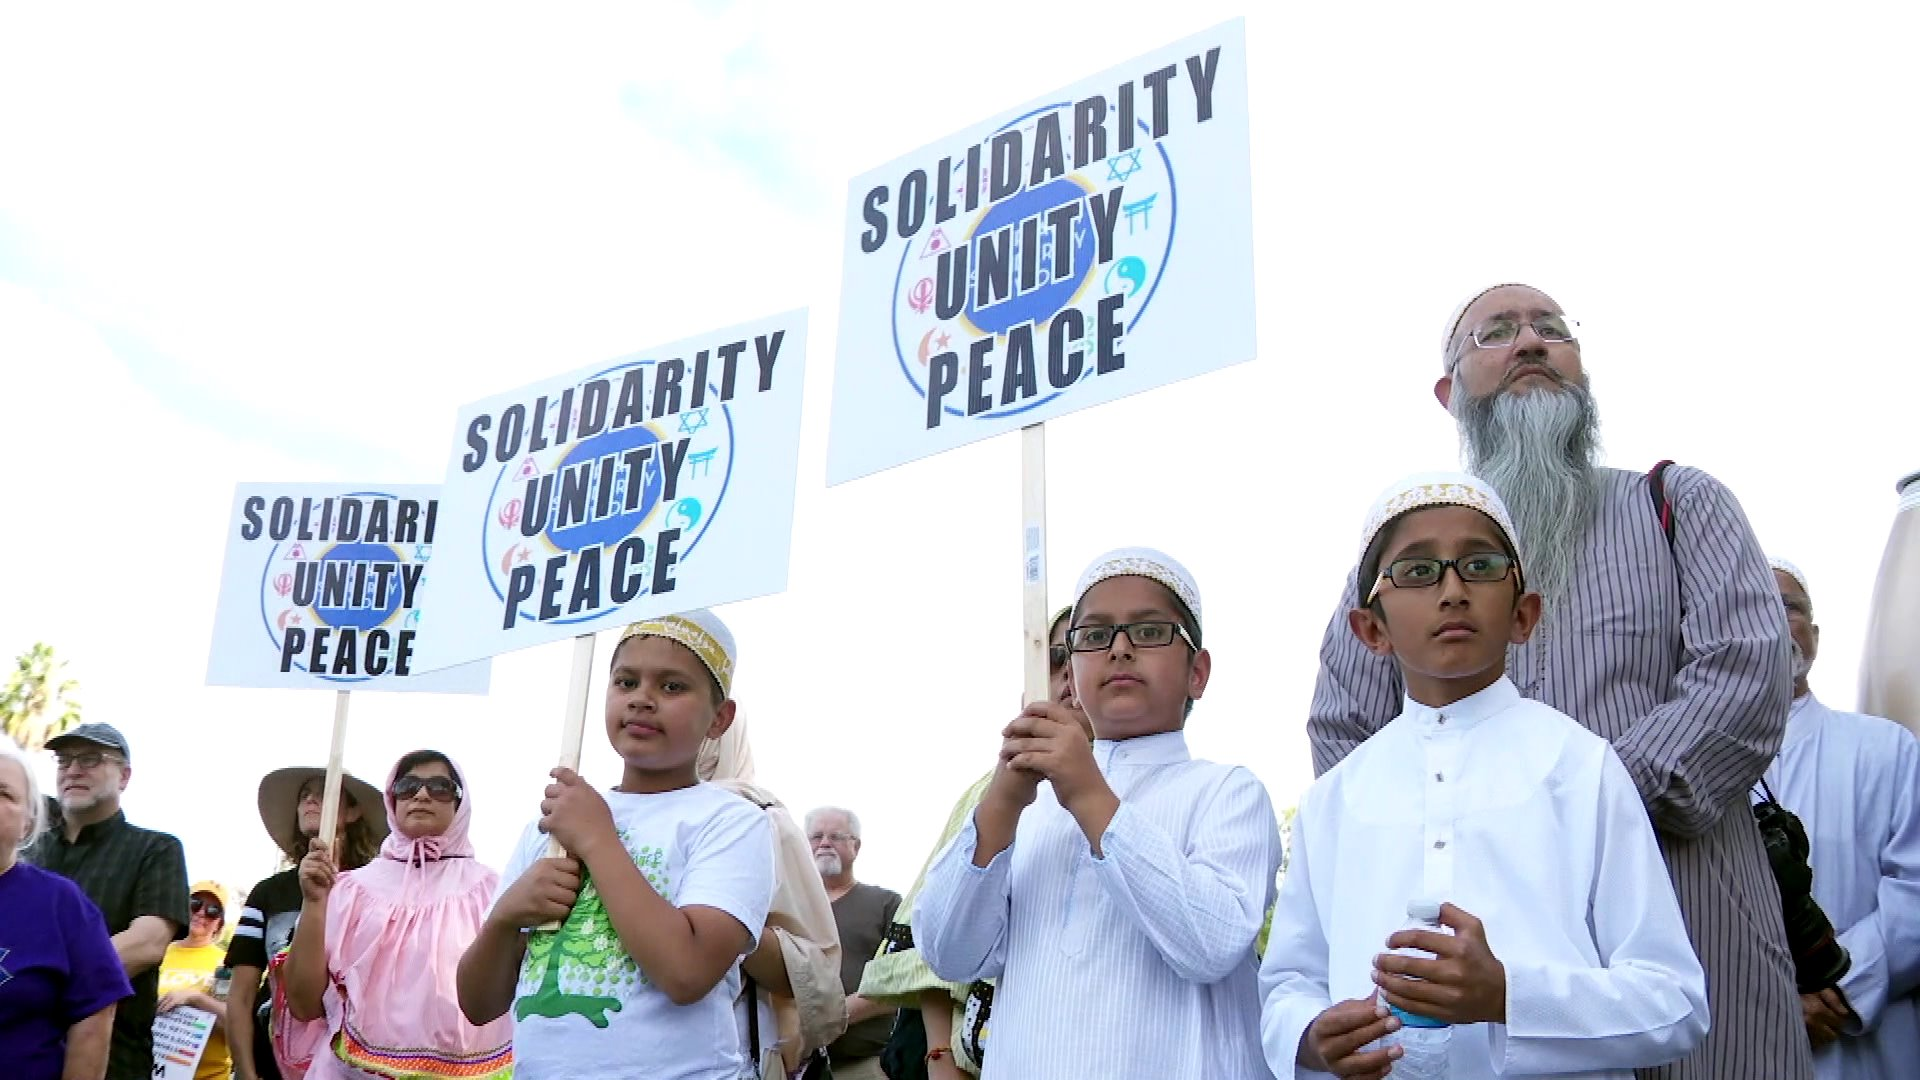 Children are seen holding signs at an interfaith march in Woodland Hills on Oct. 28, 2018, a day after a man launched a deadly attack on a synagogue in Pittsburgh. (Credit: KTLA)